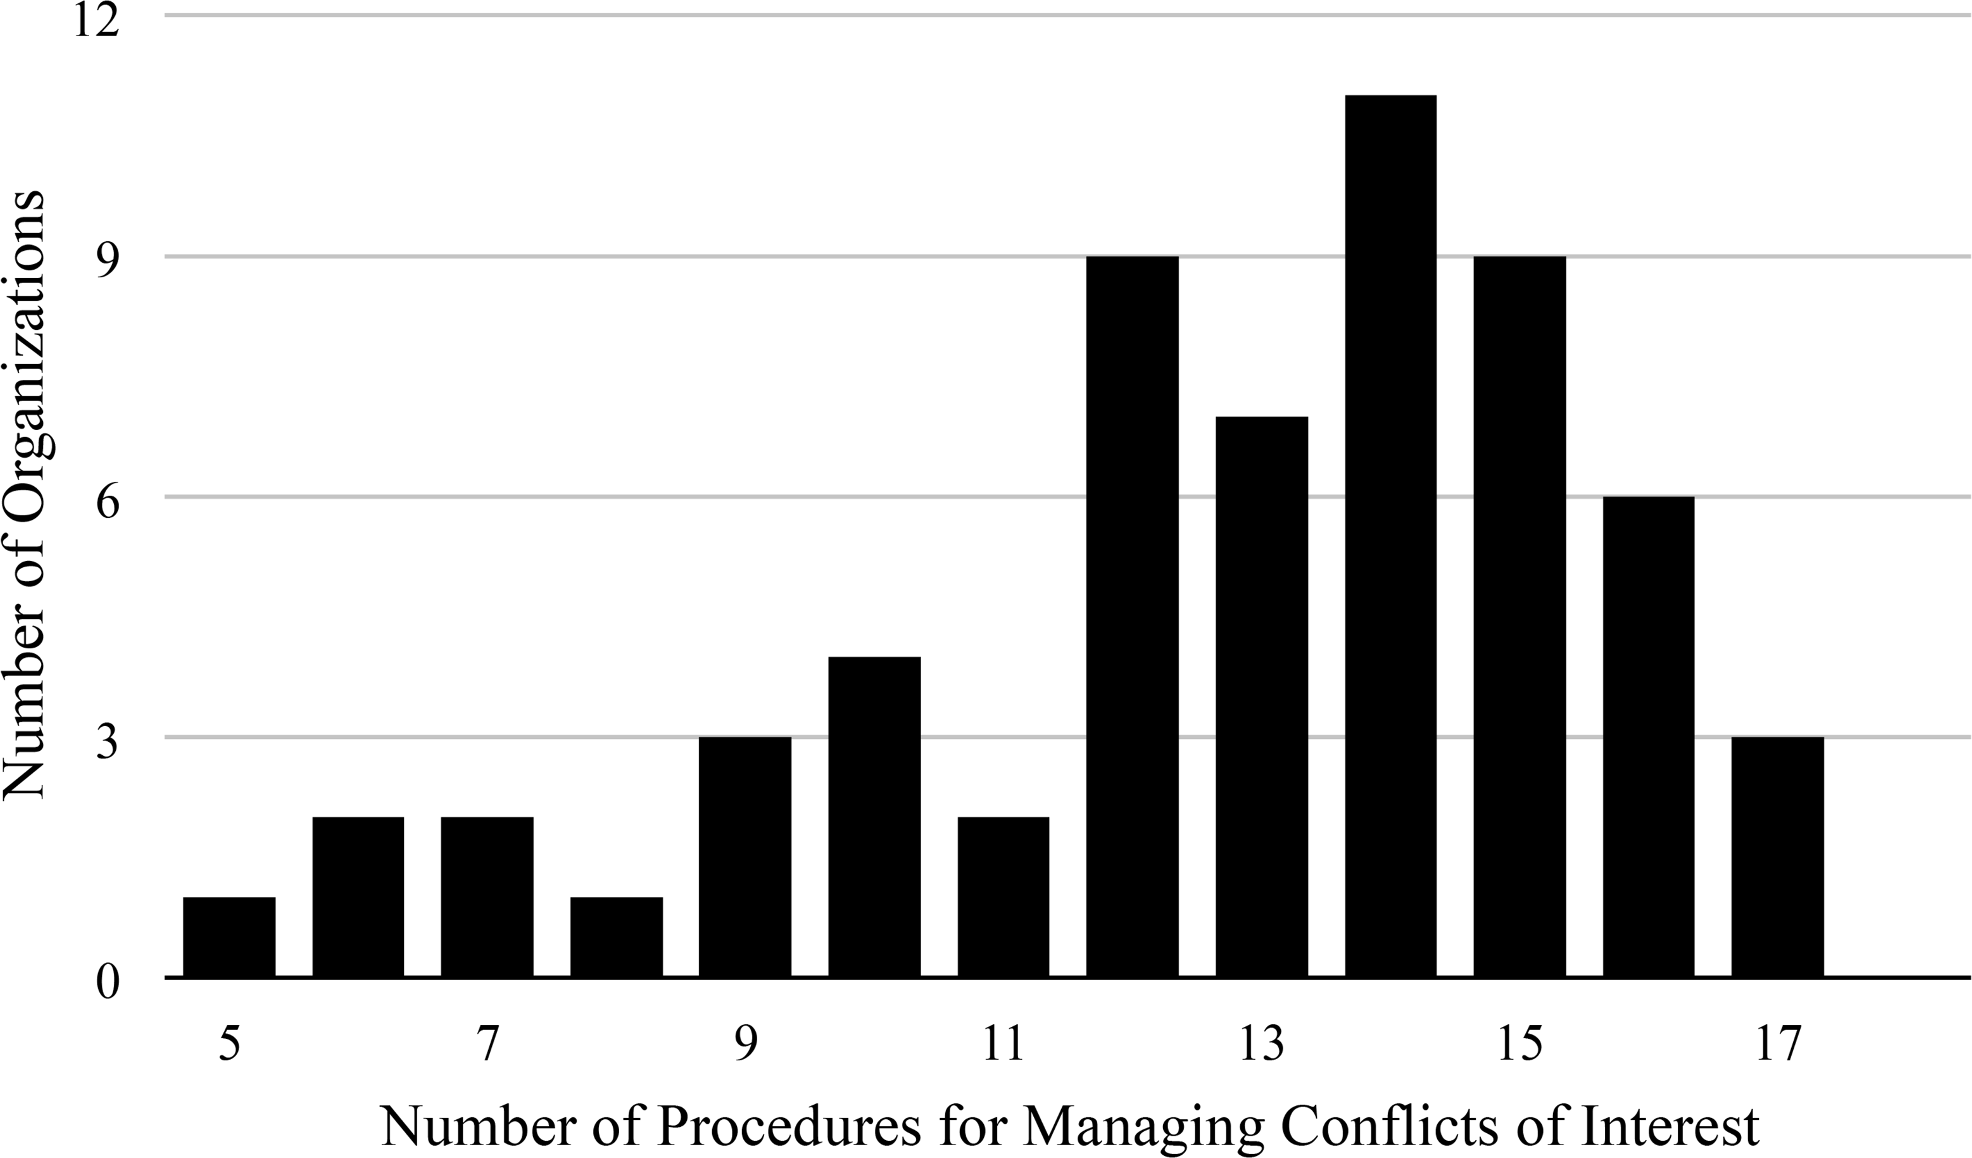 Number of procedures for managing conflicts of interest reported by organizations producing clinical practice guidelines.